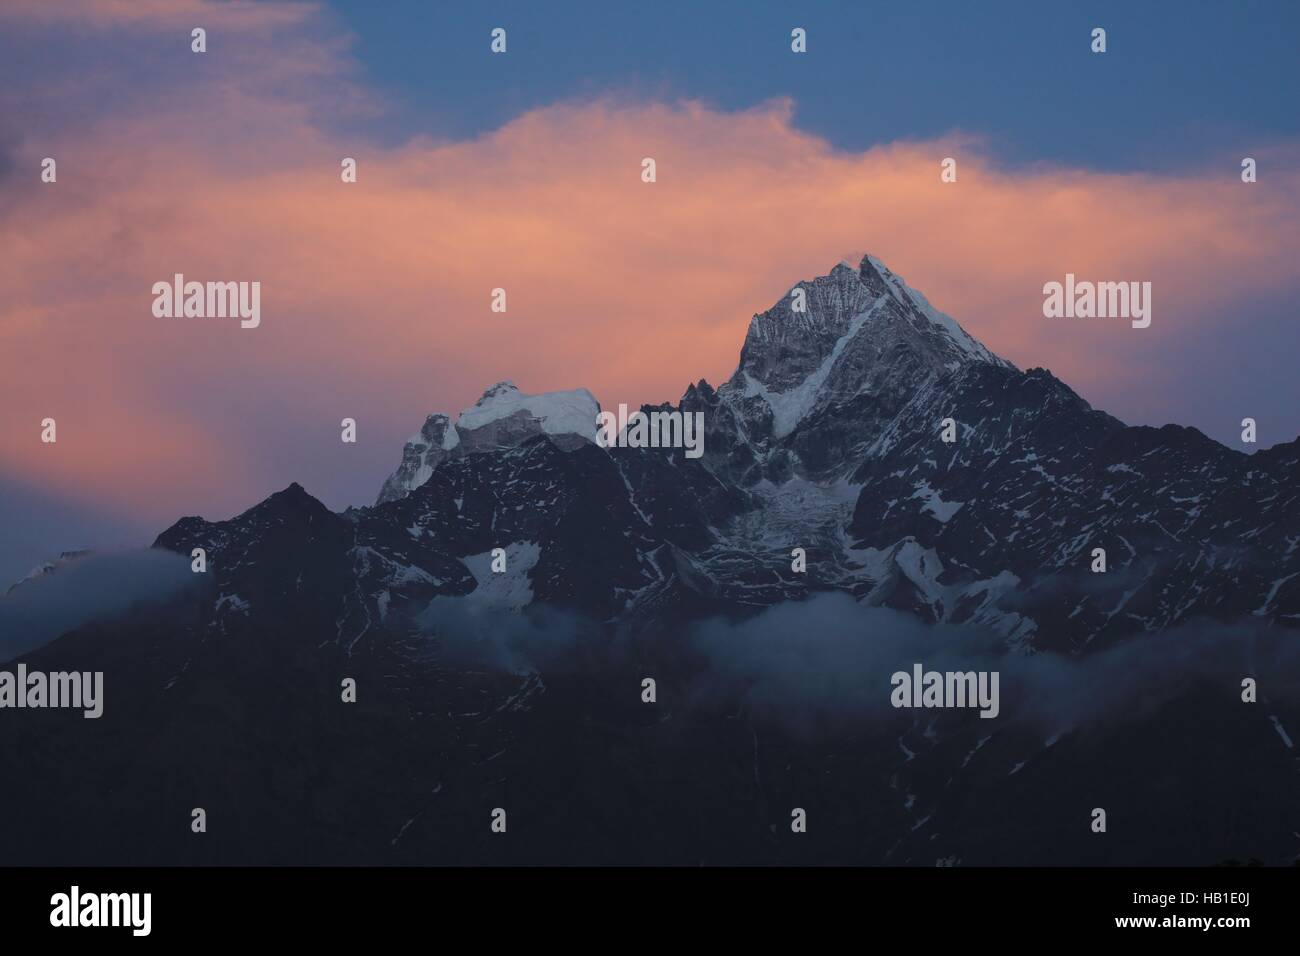 Nightfall in the Everest Region - Stock Image